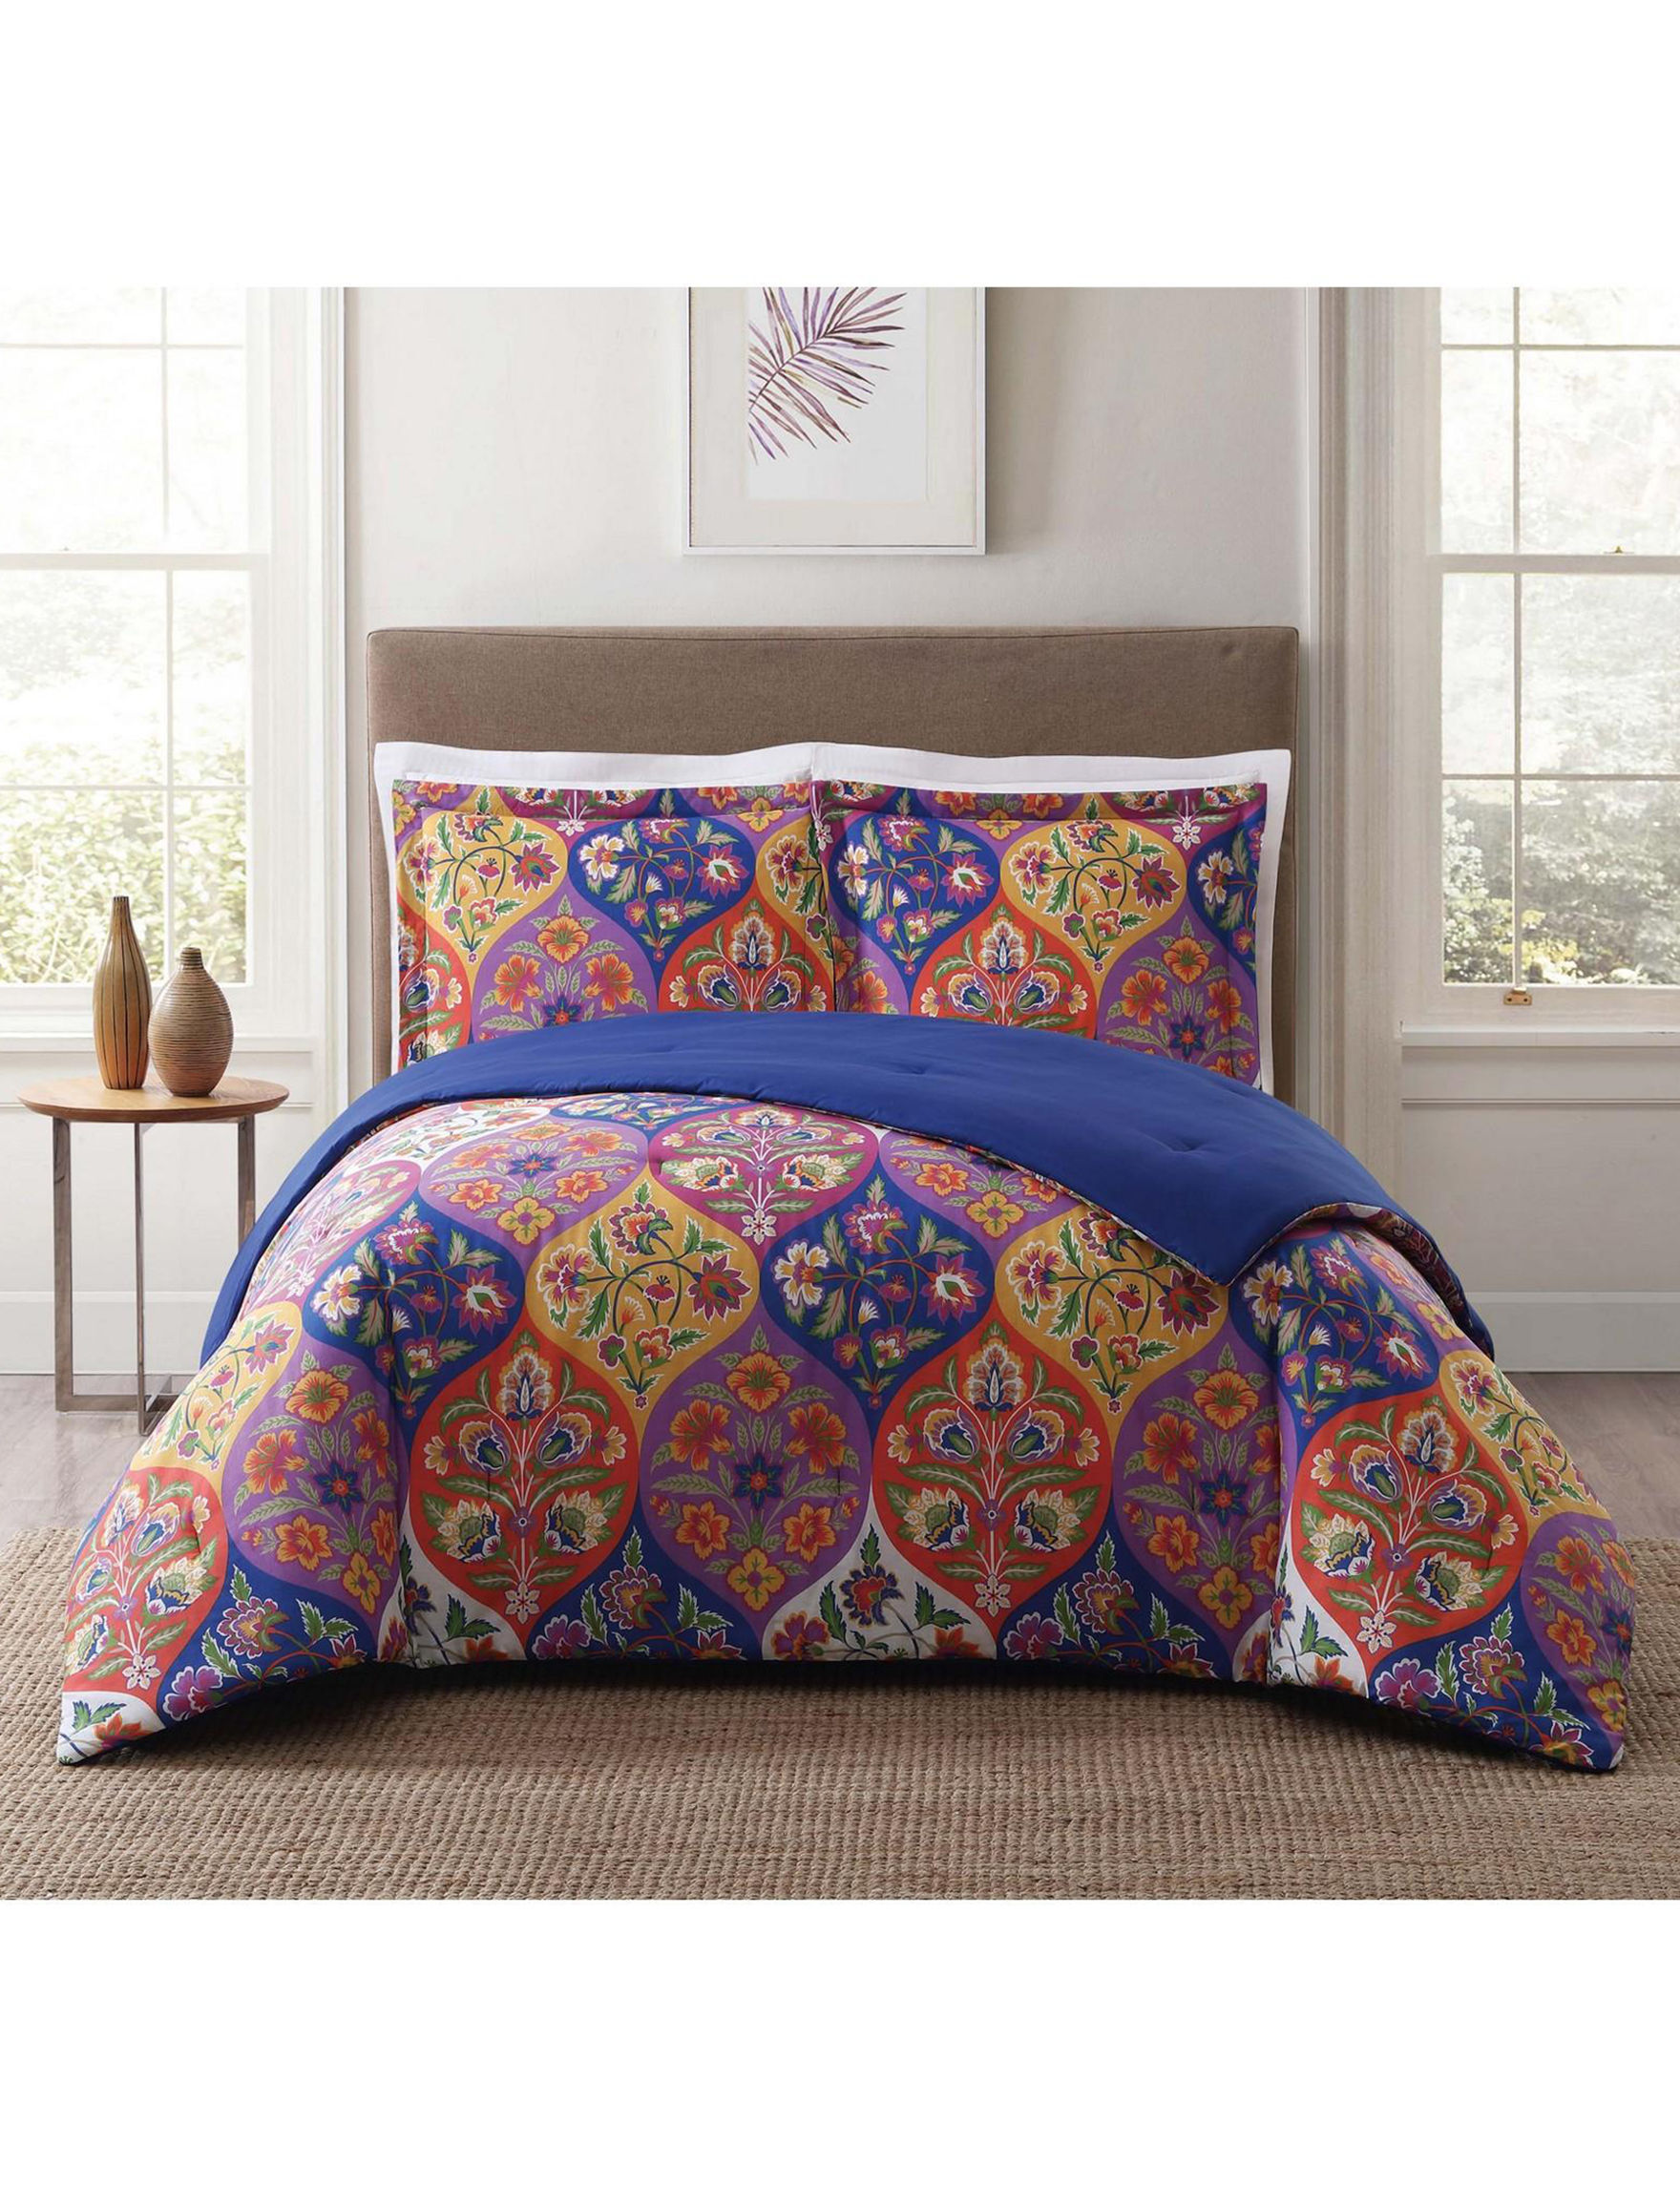 Style 212 Blue / Orange Comforters & Comforter Sets